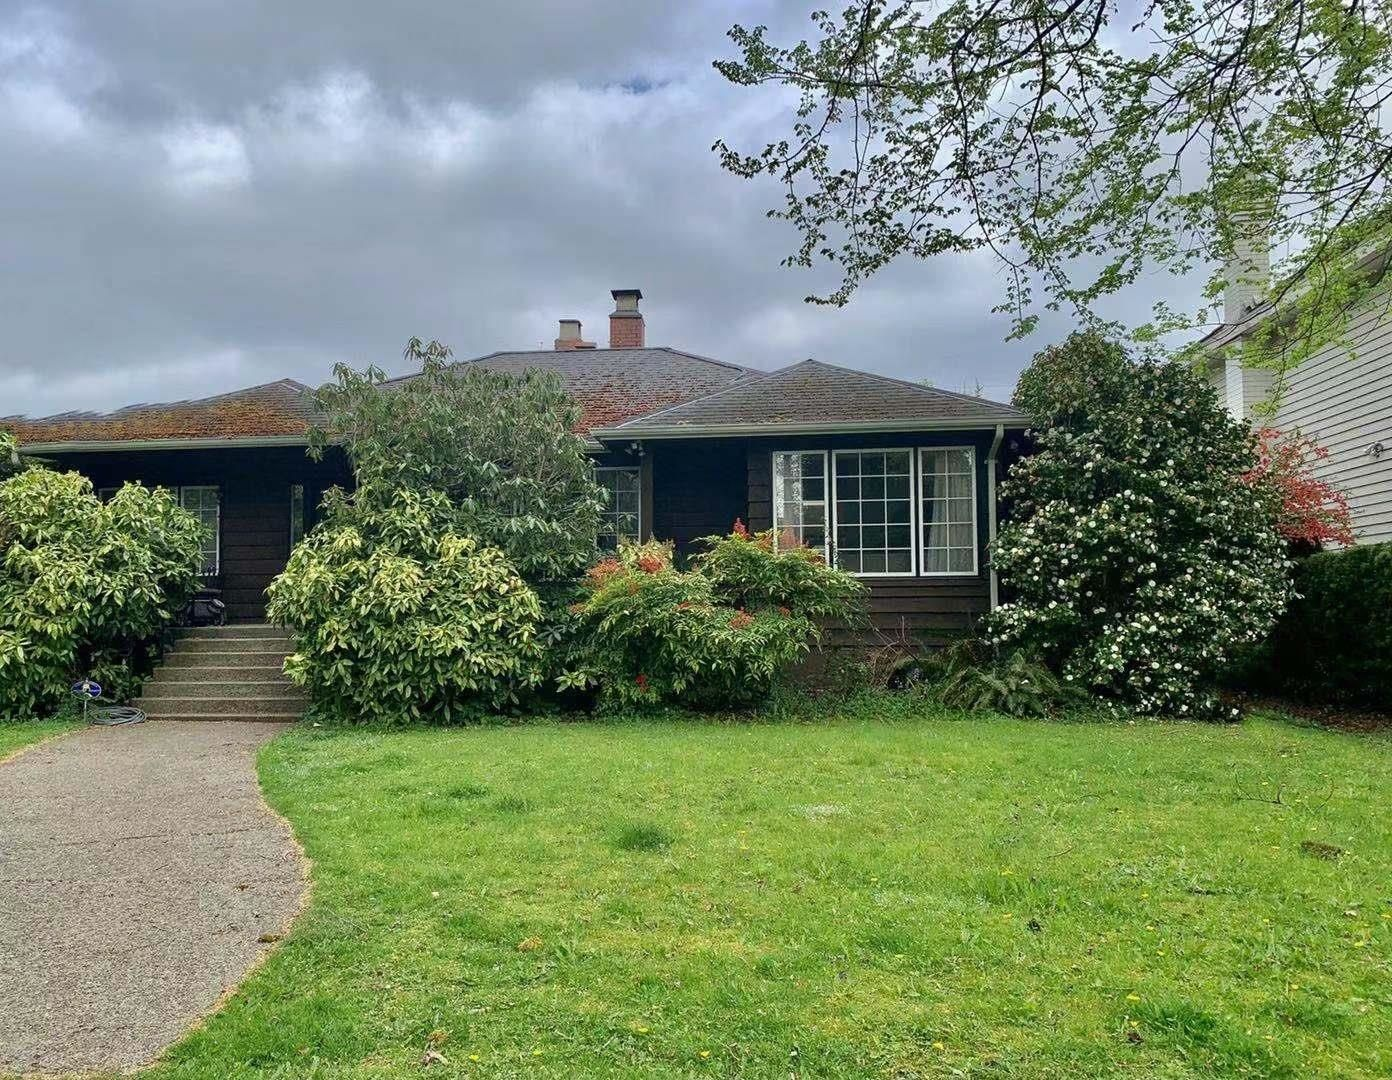 Main Photo: 1575 W 29TH Avenue in Vancouver: Shaughnessy House for sale (Vancouver West)  : MLS®# R2609280